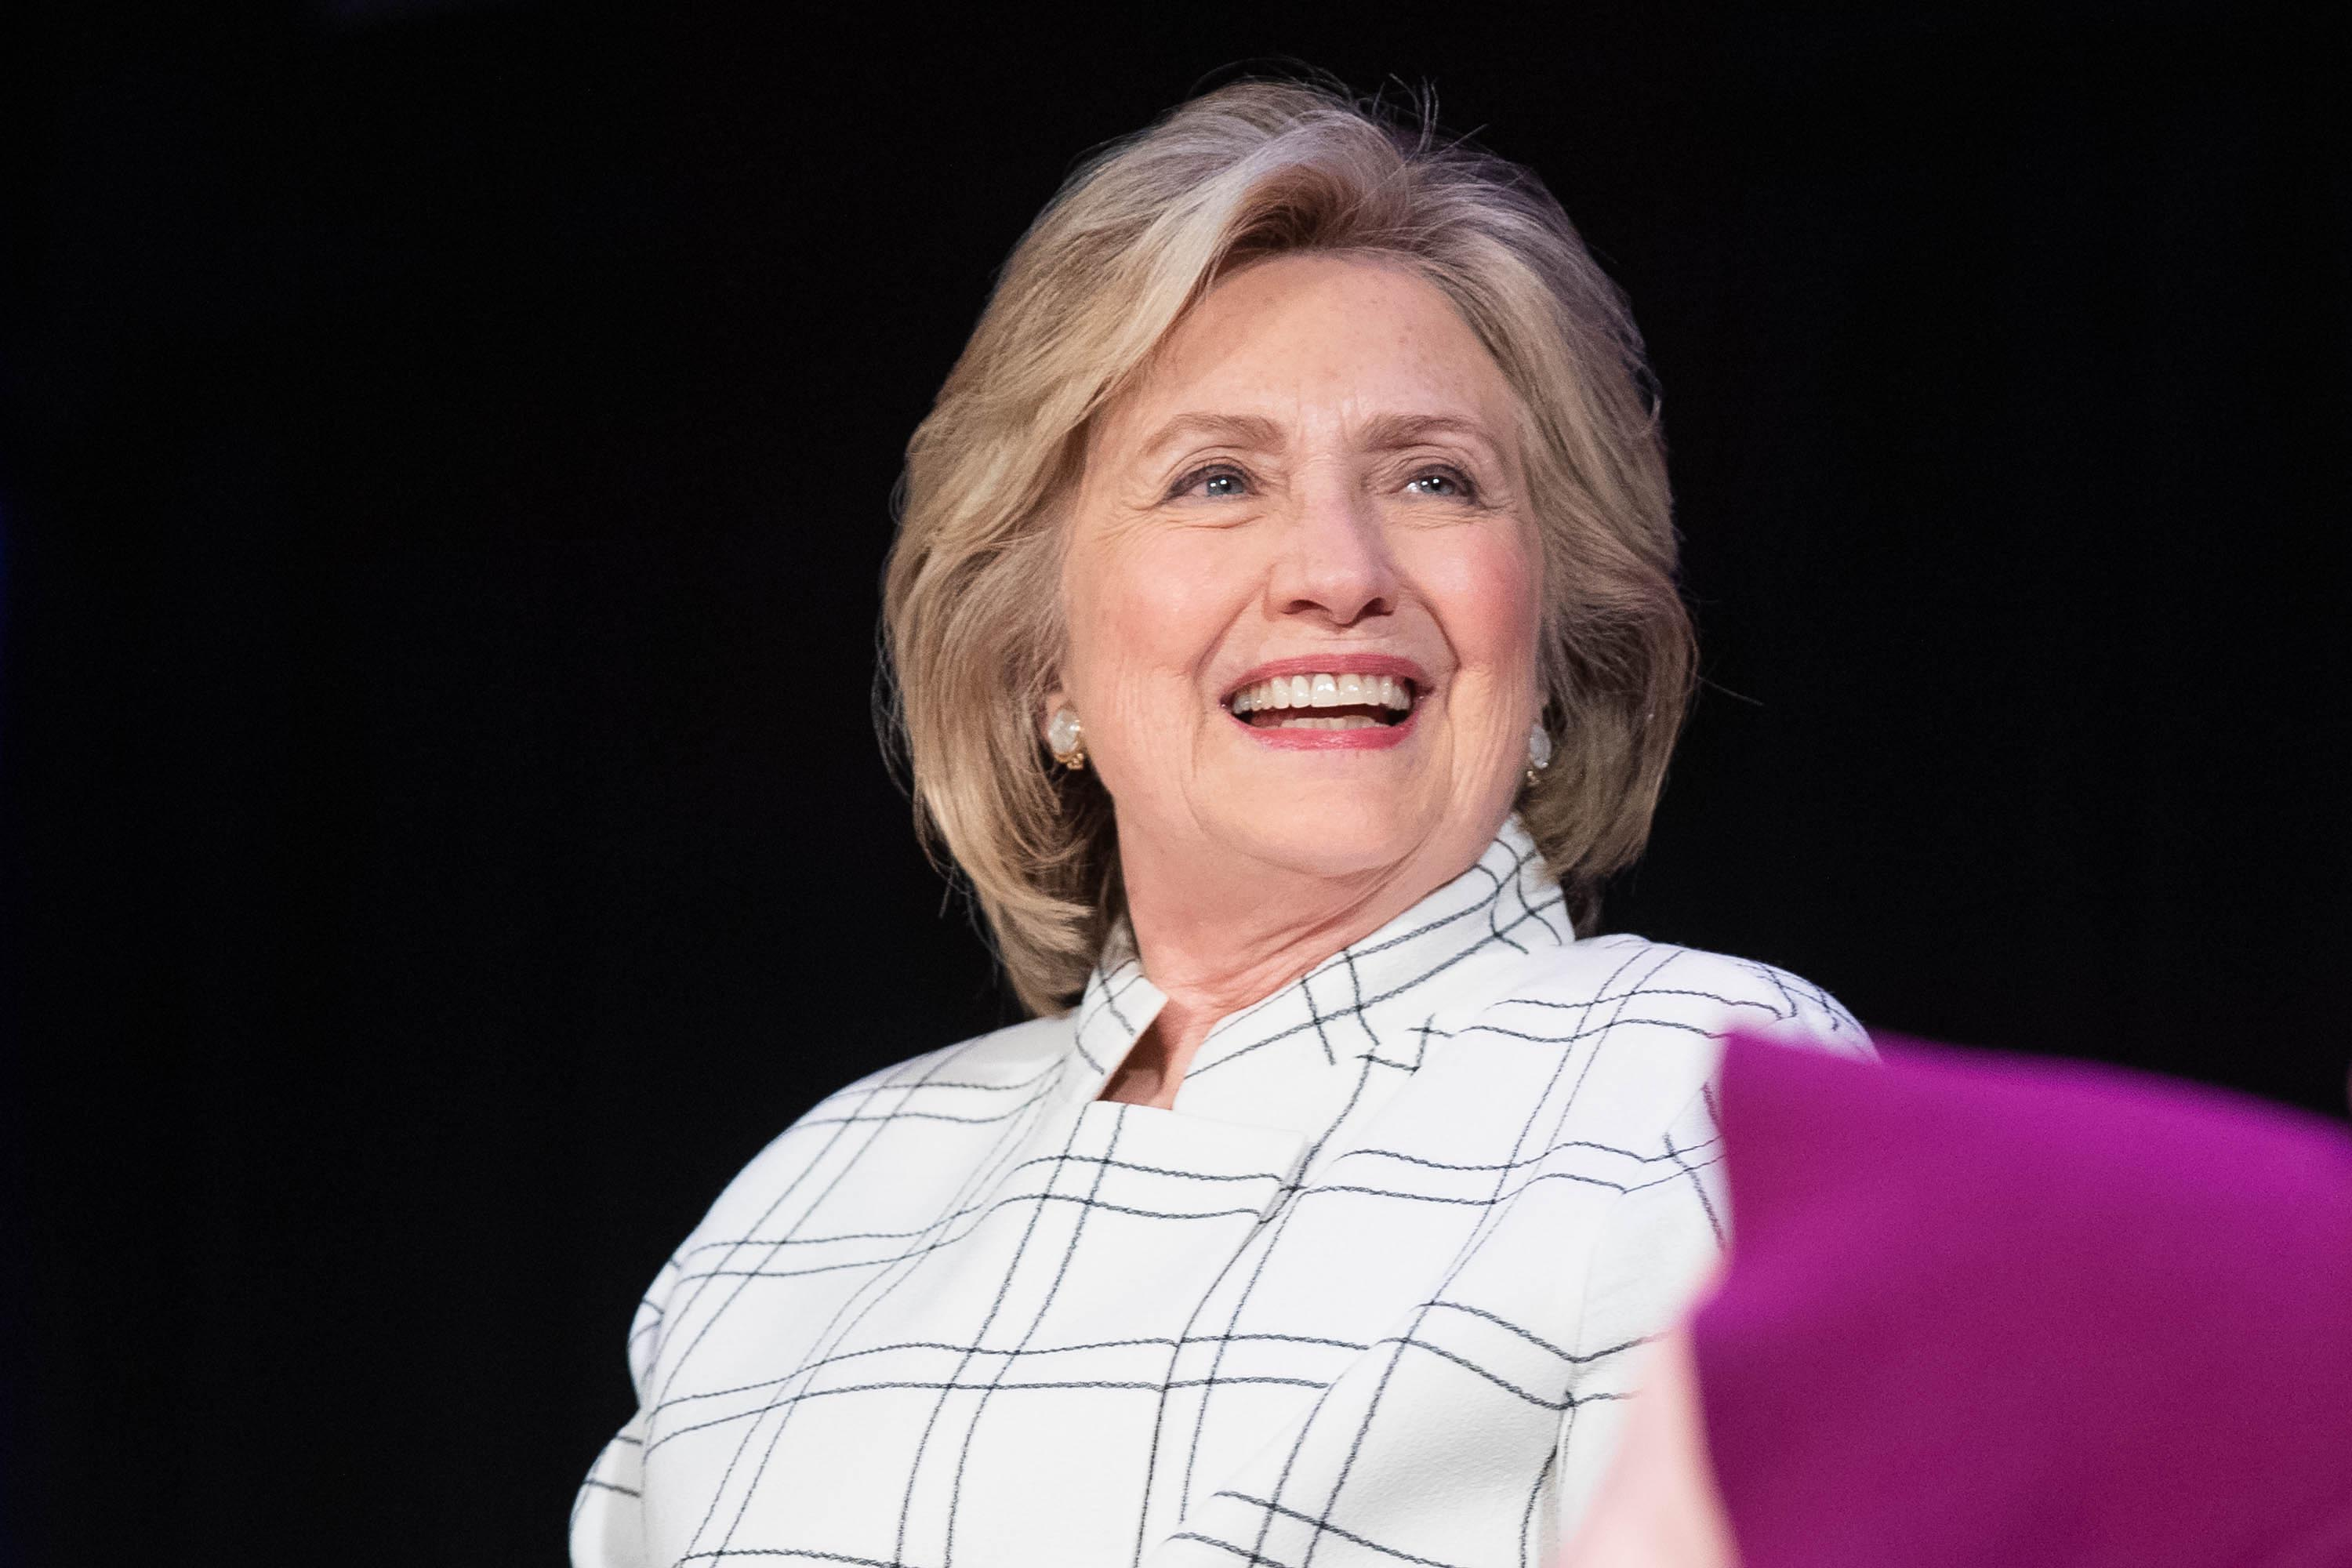 Hillary Clinton goes on Howard Stern's show for the first time